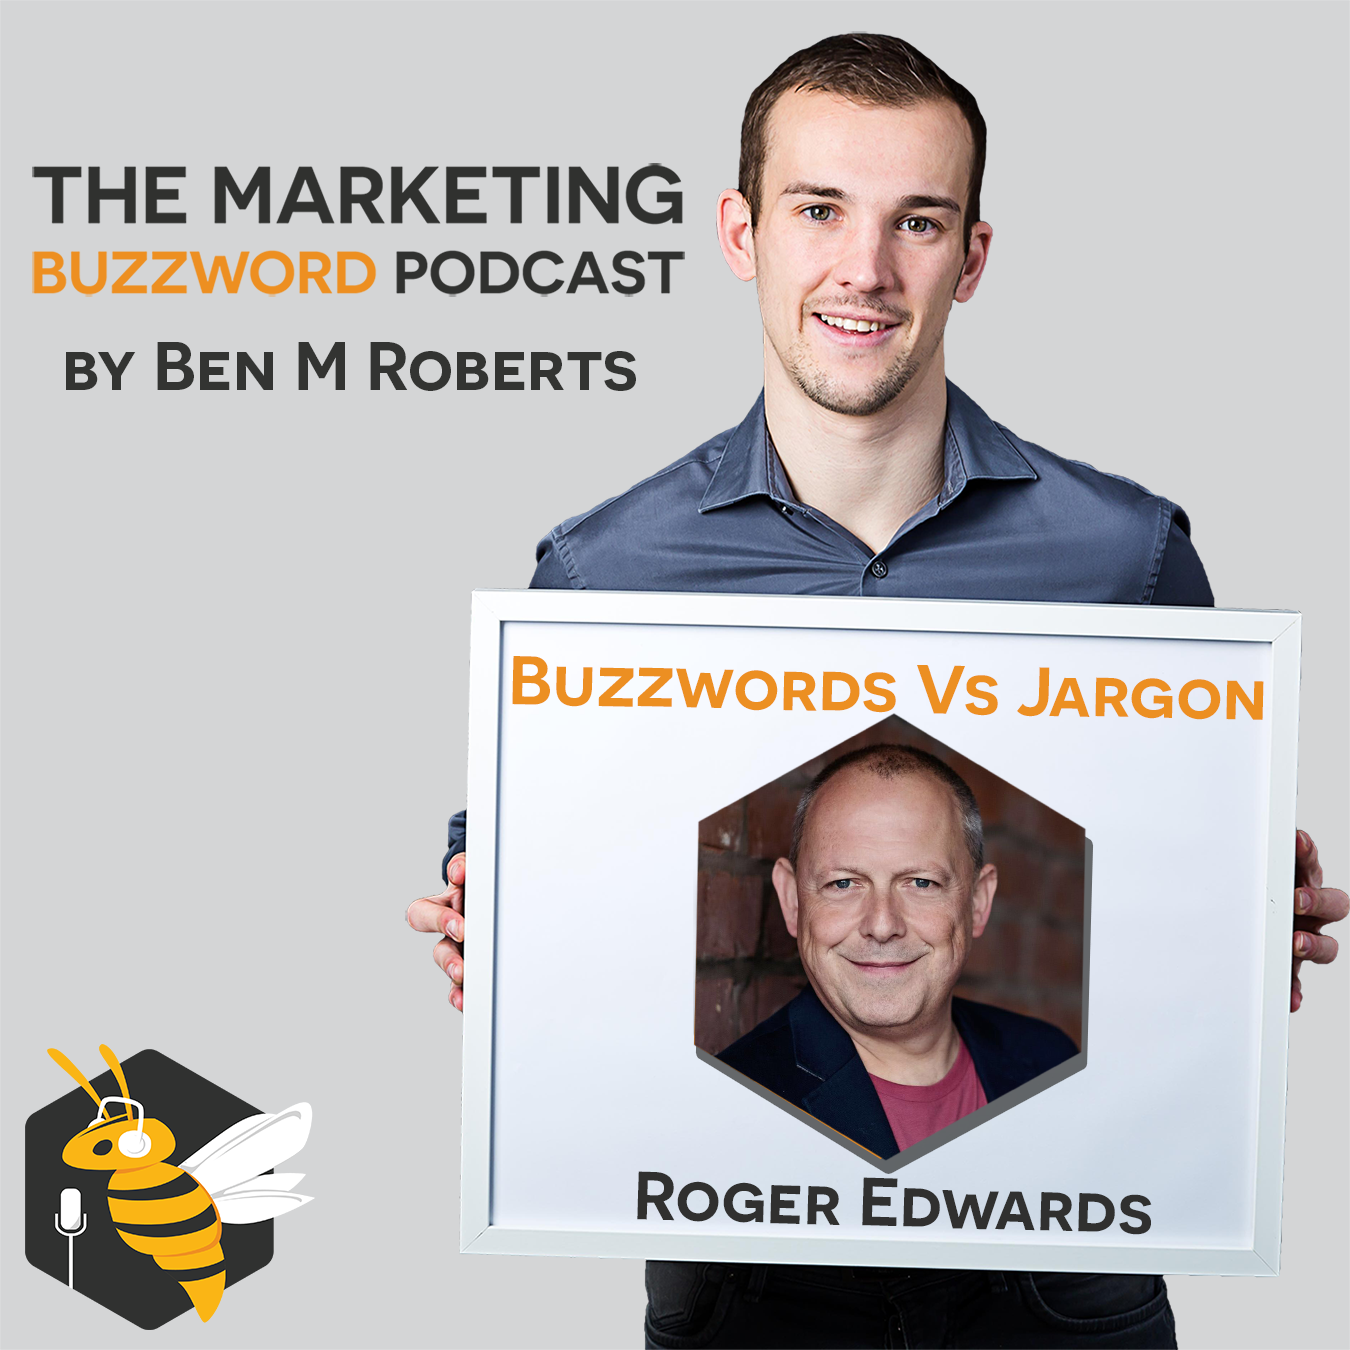 Buzzwords Vs Jargon - What's the difference between buzzwords and jargon? What are the 3 rules for keeping marketing simple? Is there a place for jargon in the workplace?